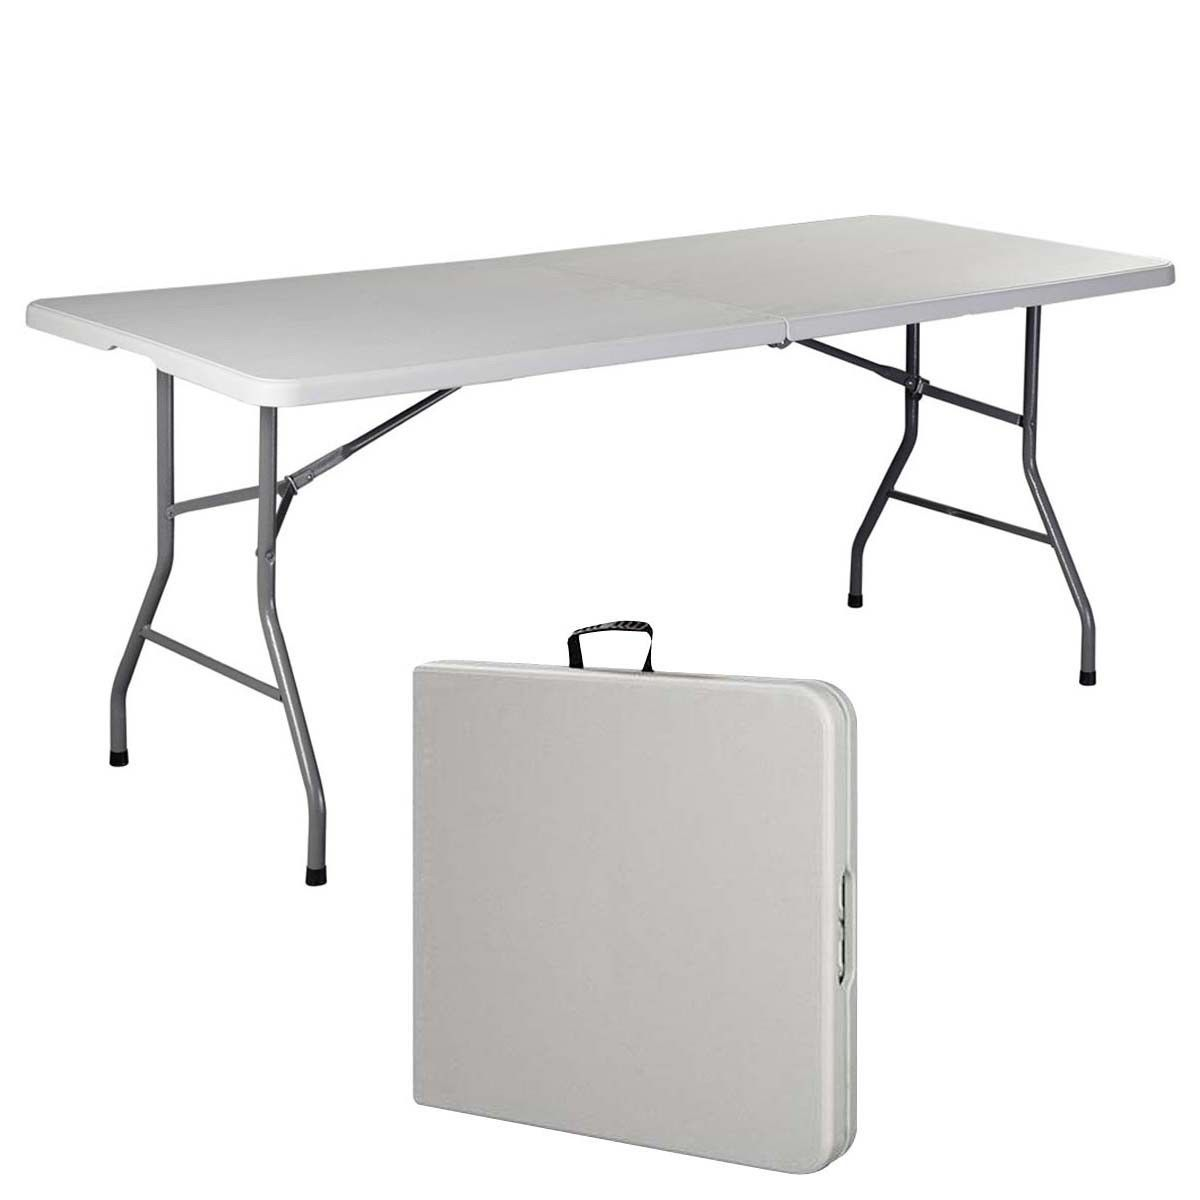 portable folding table 6u0027 folding table portable plastic indoor outdoor picnic party dining camp UZWCXWQ